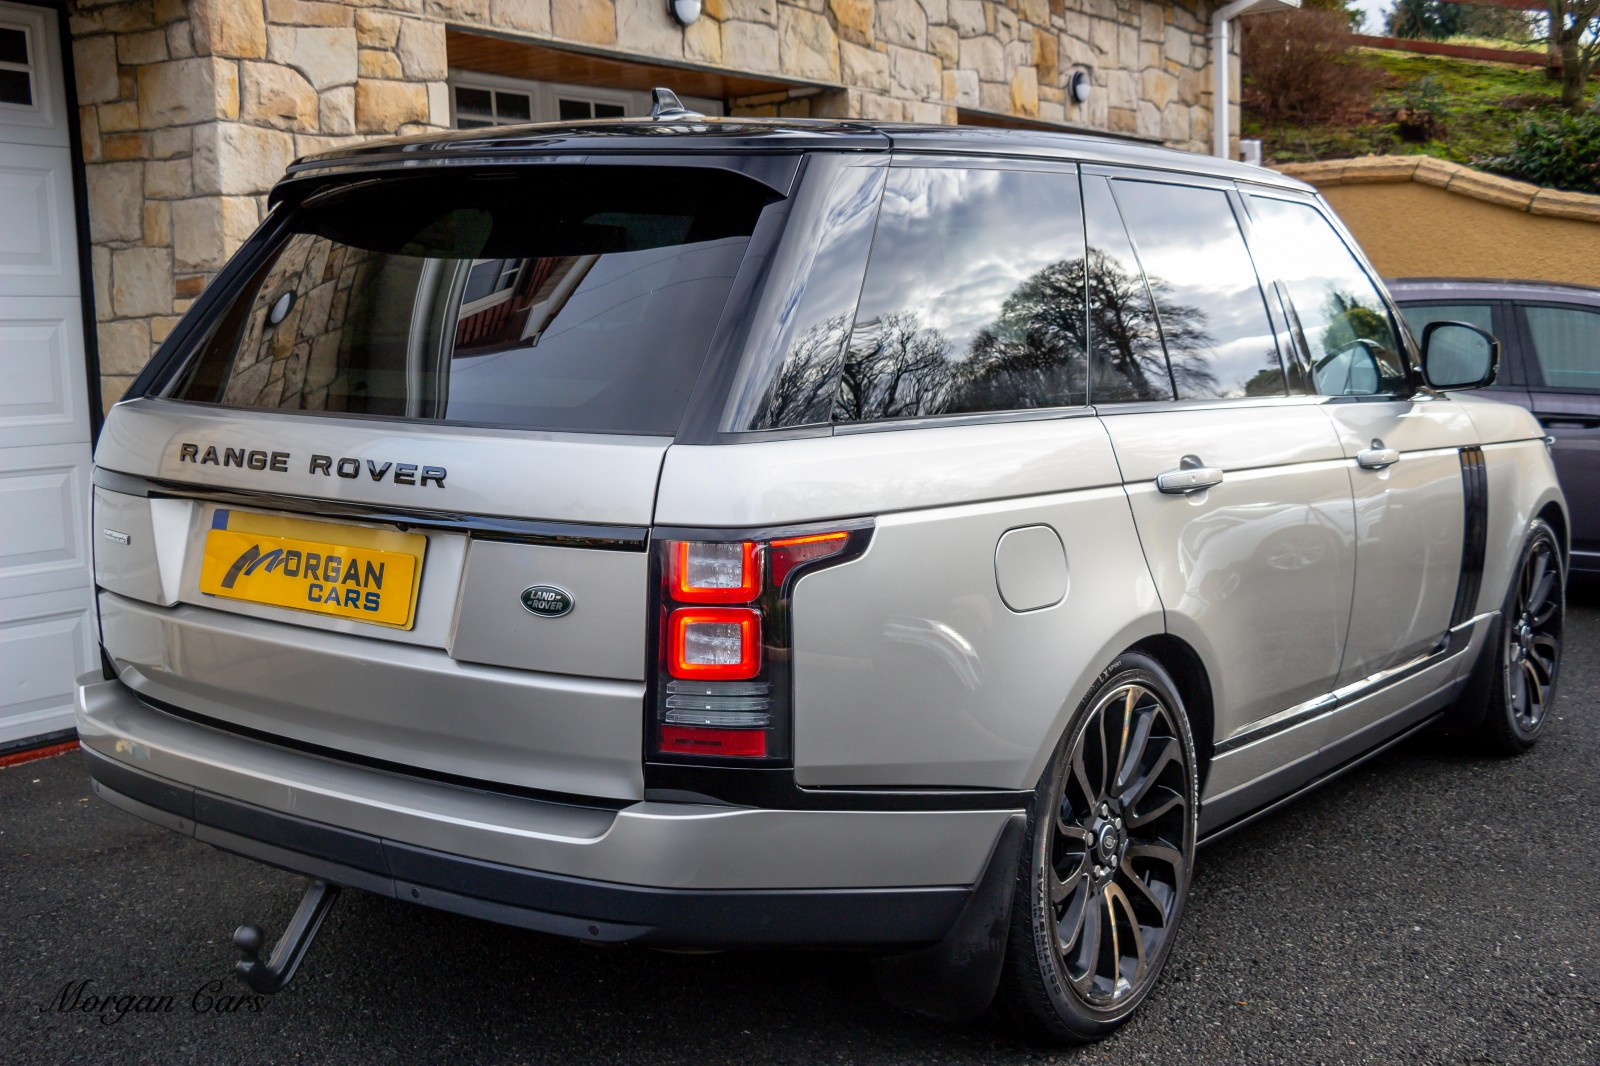 2015 Land Rover Range Rover 4.4 SDV8 AUTOBIOGRAPHY Diesel Automatic – Morgan Cars 9 Mound Road, Warrenpoint, Newry BT34 3LW, UK full